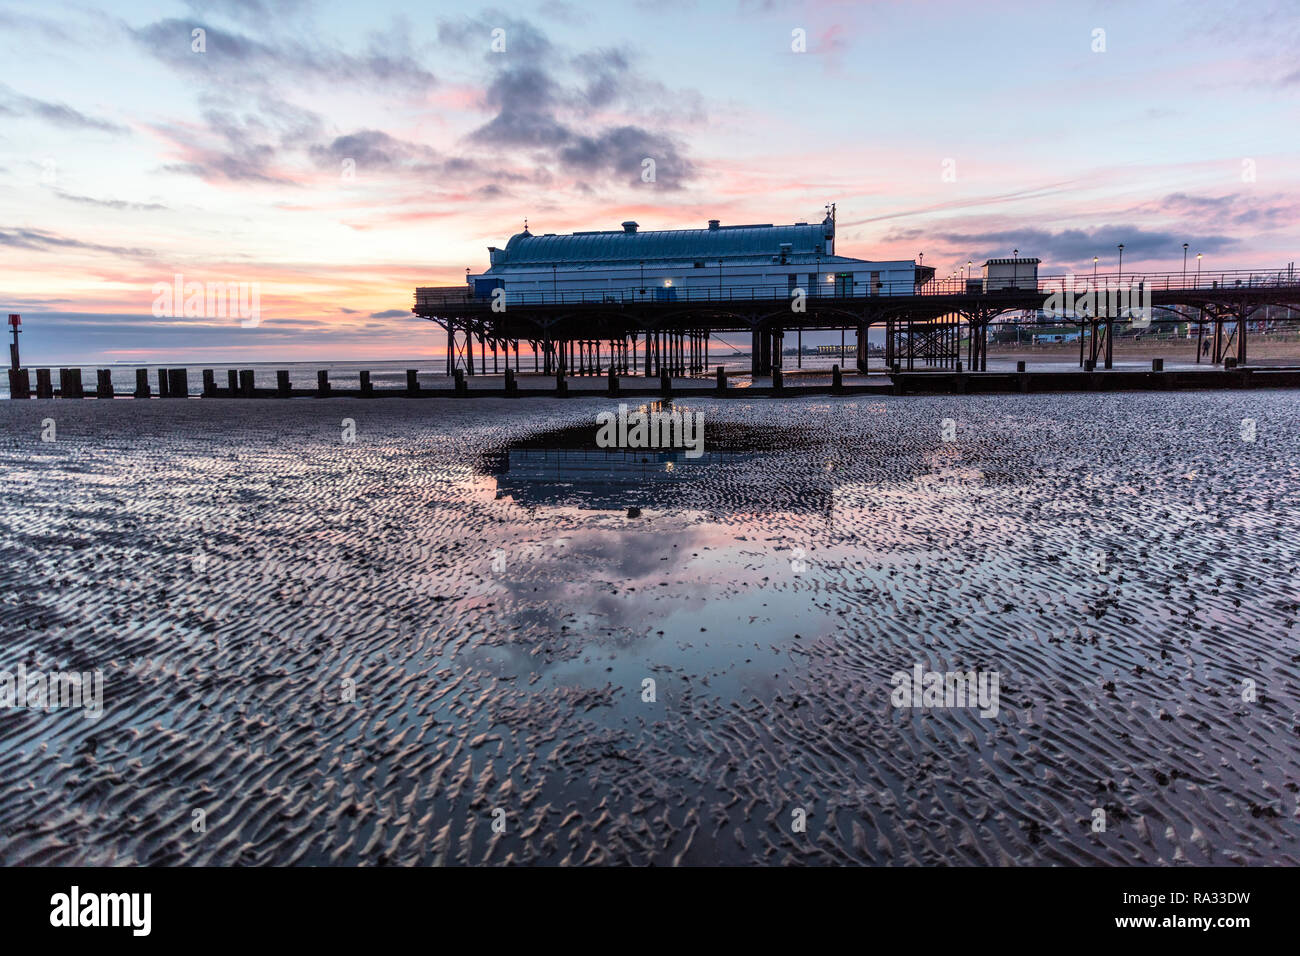 Cleethorpes, Lincolnshire, UK. 31st Dec, 2018. UK Weather: Red sunrise skies in Cleethorpes, Lincolnshire, East Coast, UK. 31st Dec, 2018. Red sky making the perfect backdrop to Cleethorpes Pier with partial cloud. Credit: Tommy (Louth)/Alamy Live News - Stock Image